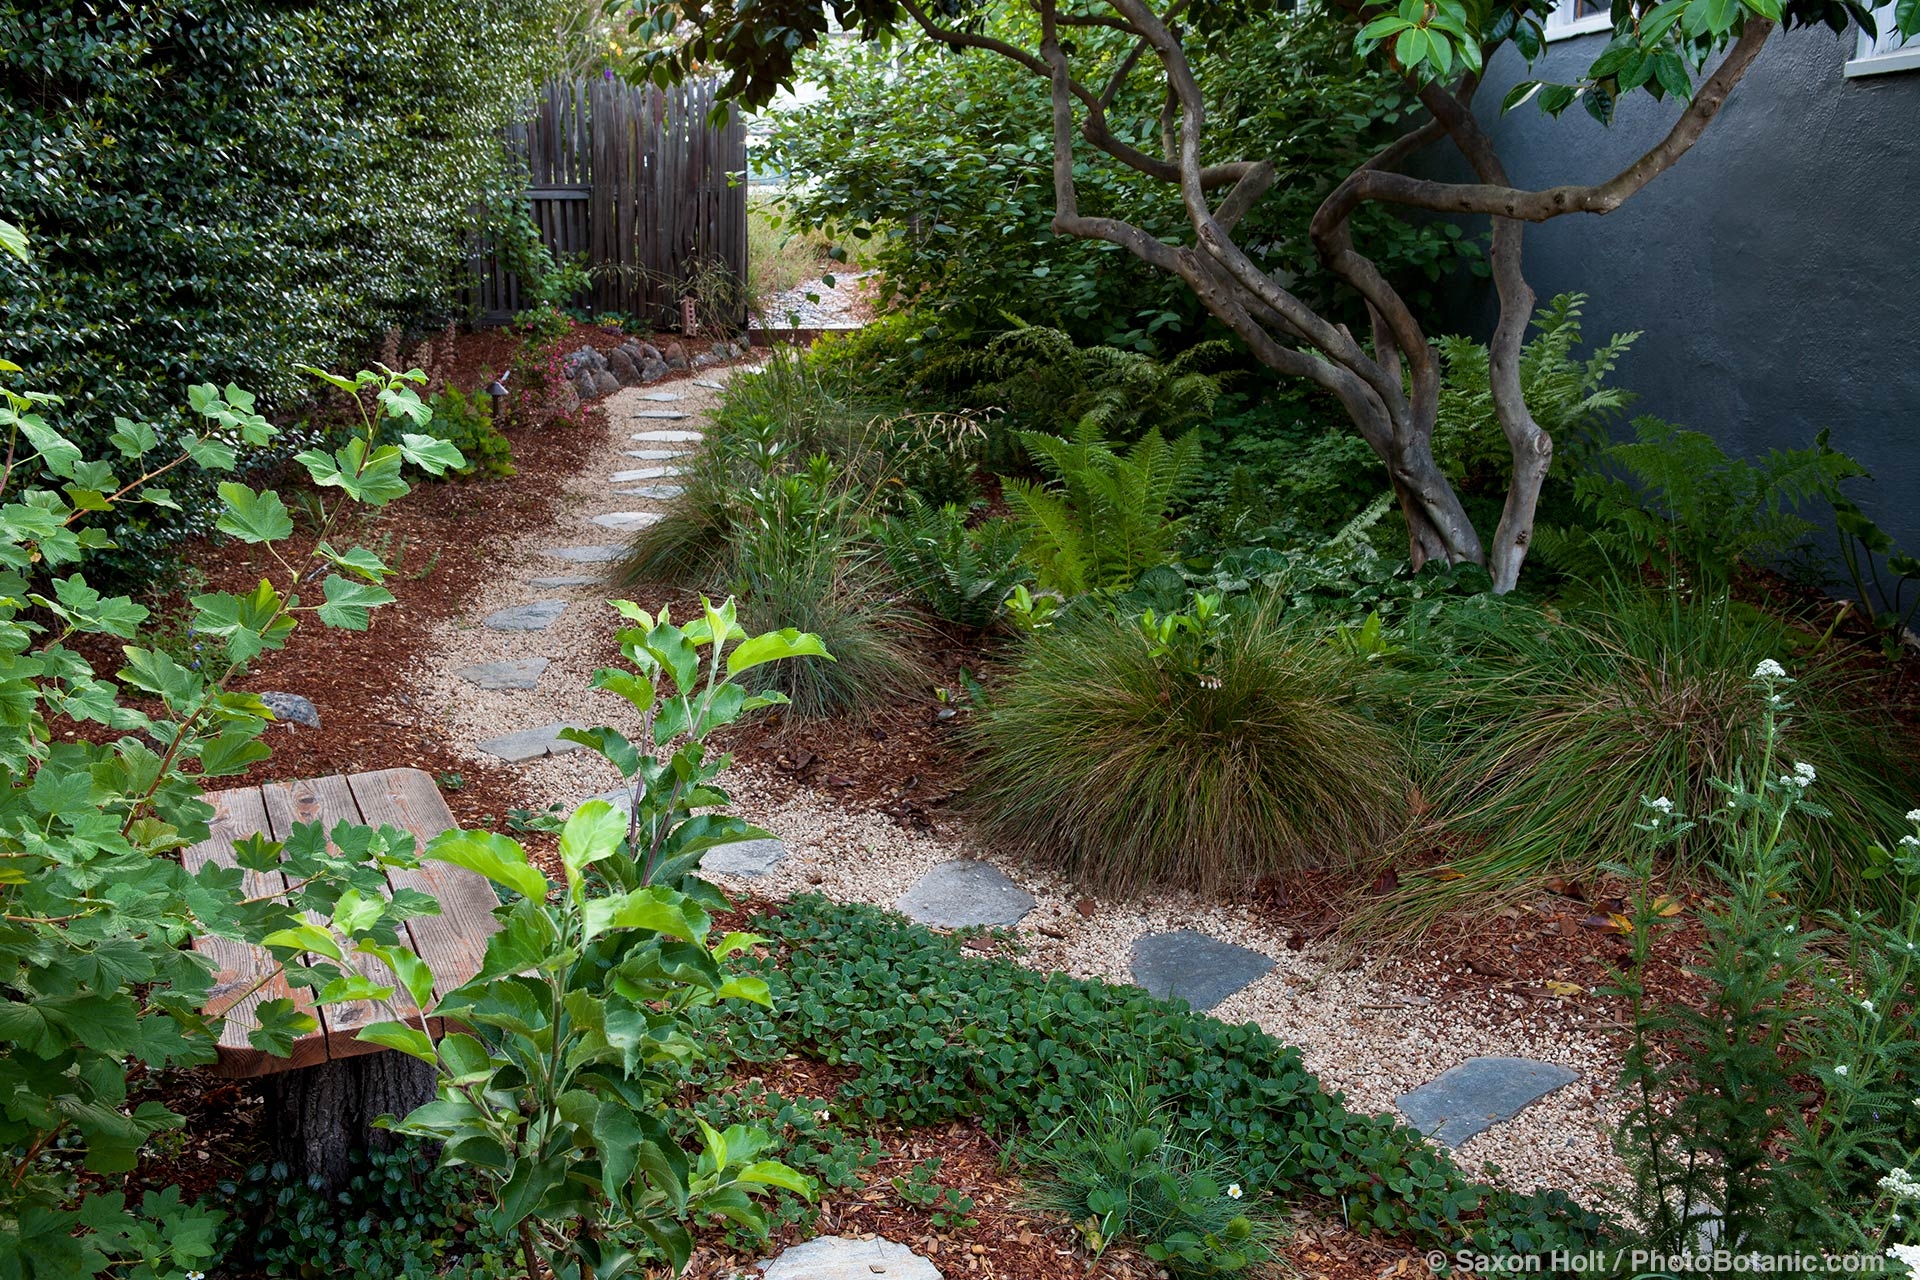 Mulching and pruning are just as important to natives as other garden plants